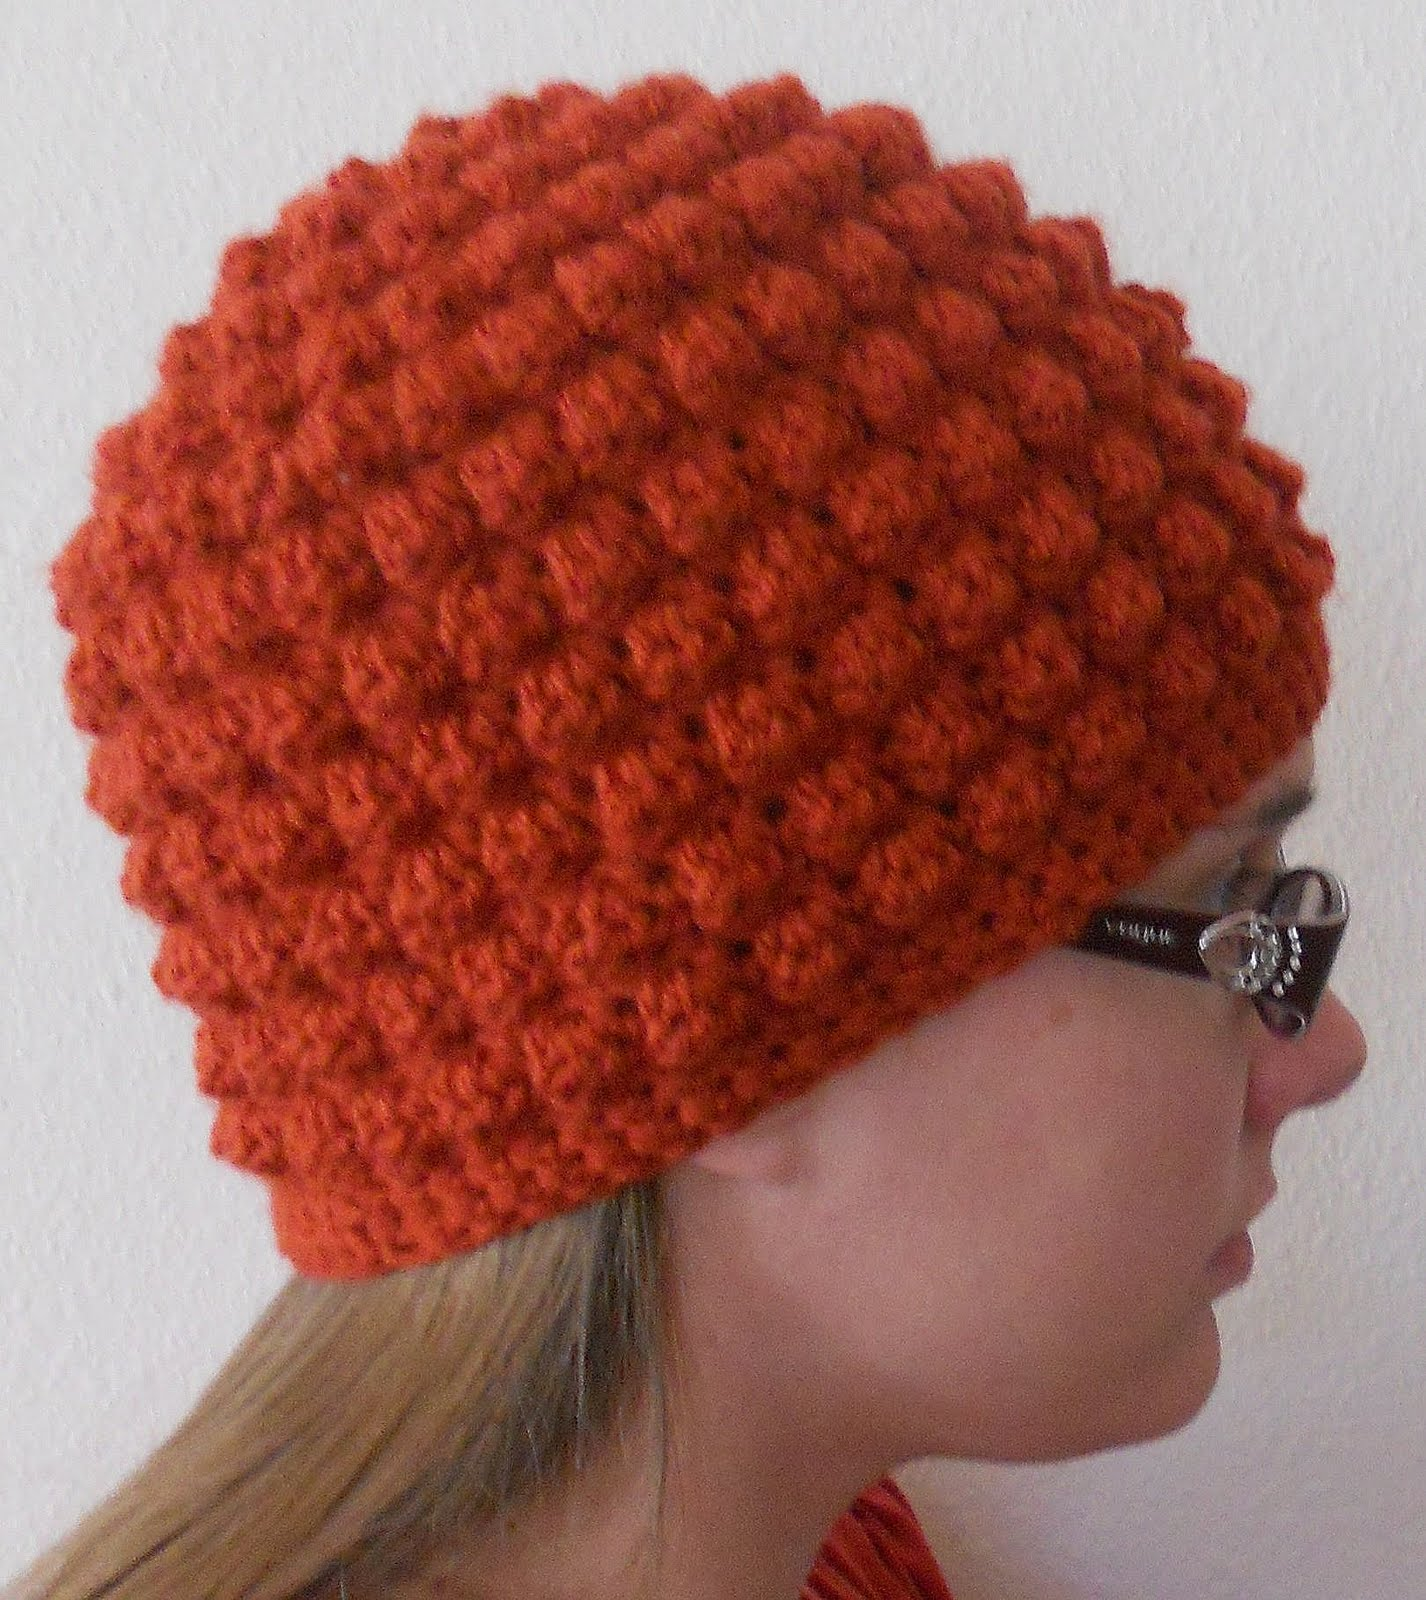 c9a241b7f42 Crafty Woman Creations  Free Adult Size Bumpy Bobbles Beanie Crochet ...